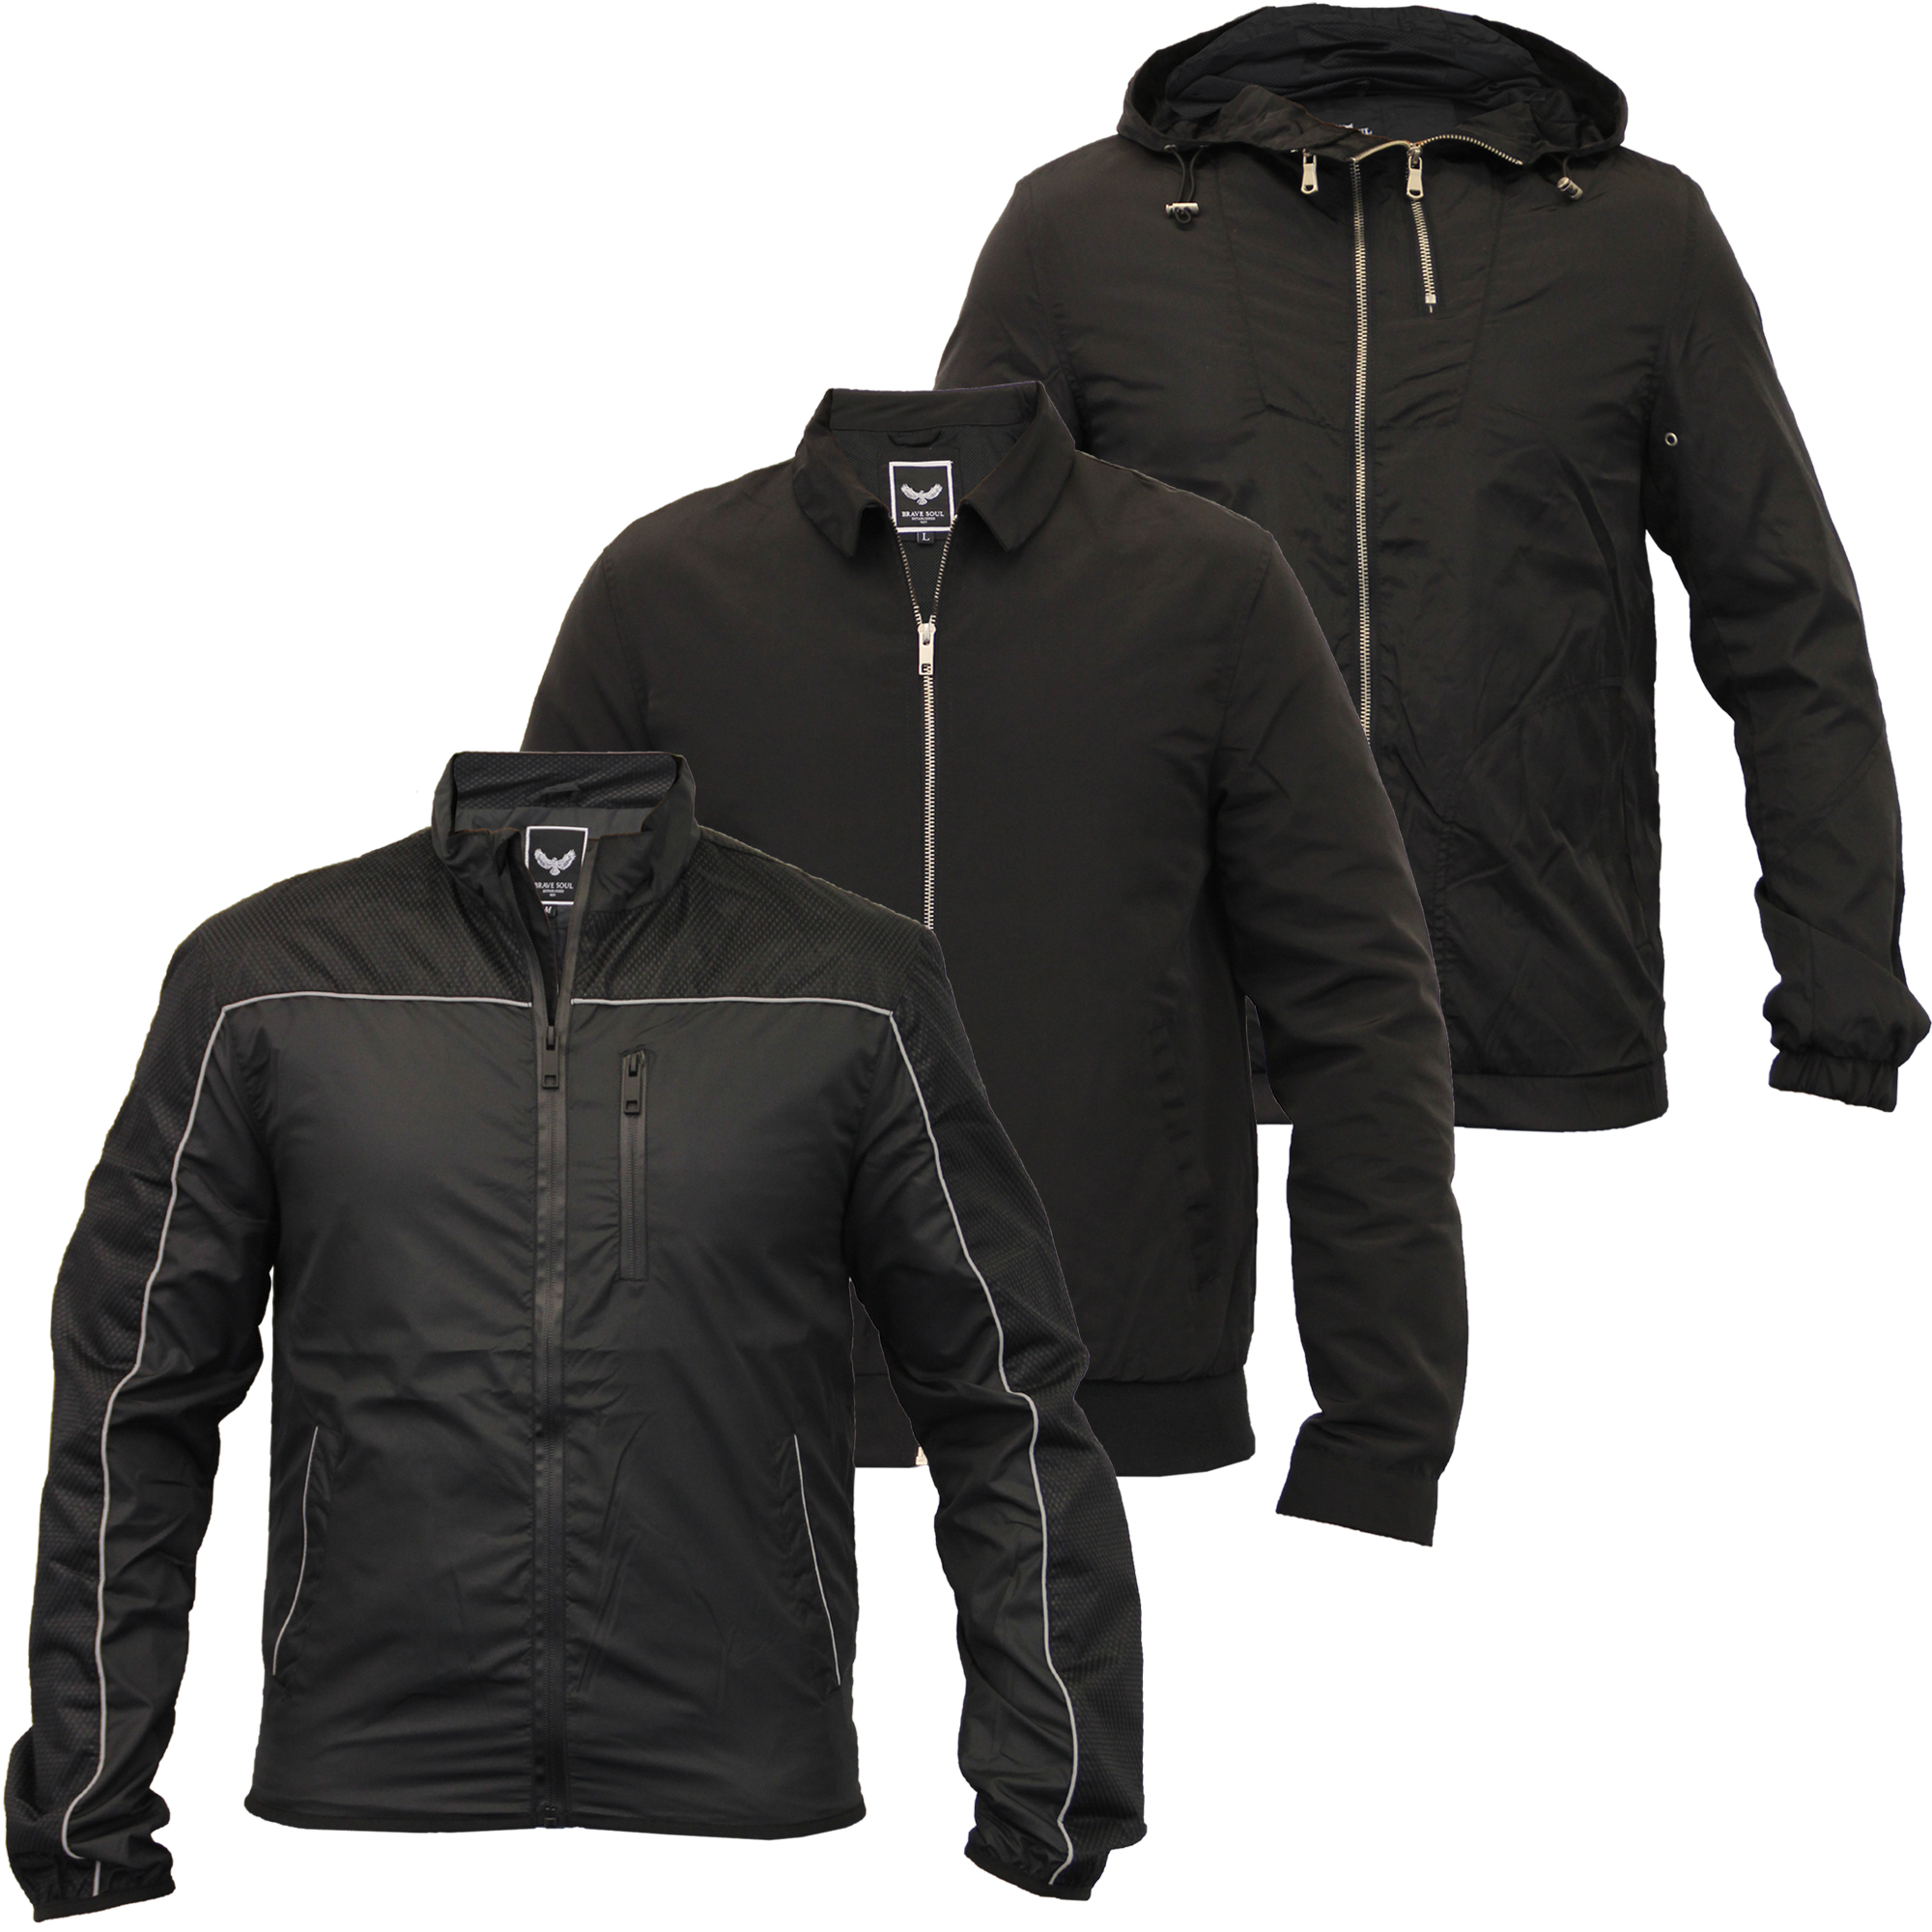 Mens-Windbreaker-Hooded-Jacket-Coat-By-Brave-Soul-Mesh-Lined thumbnail 4